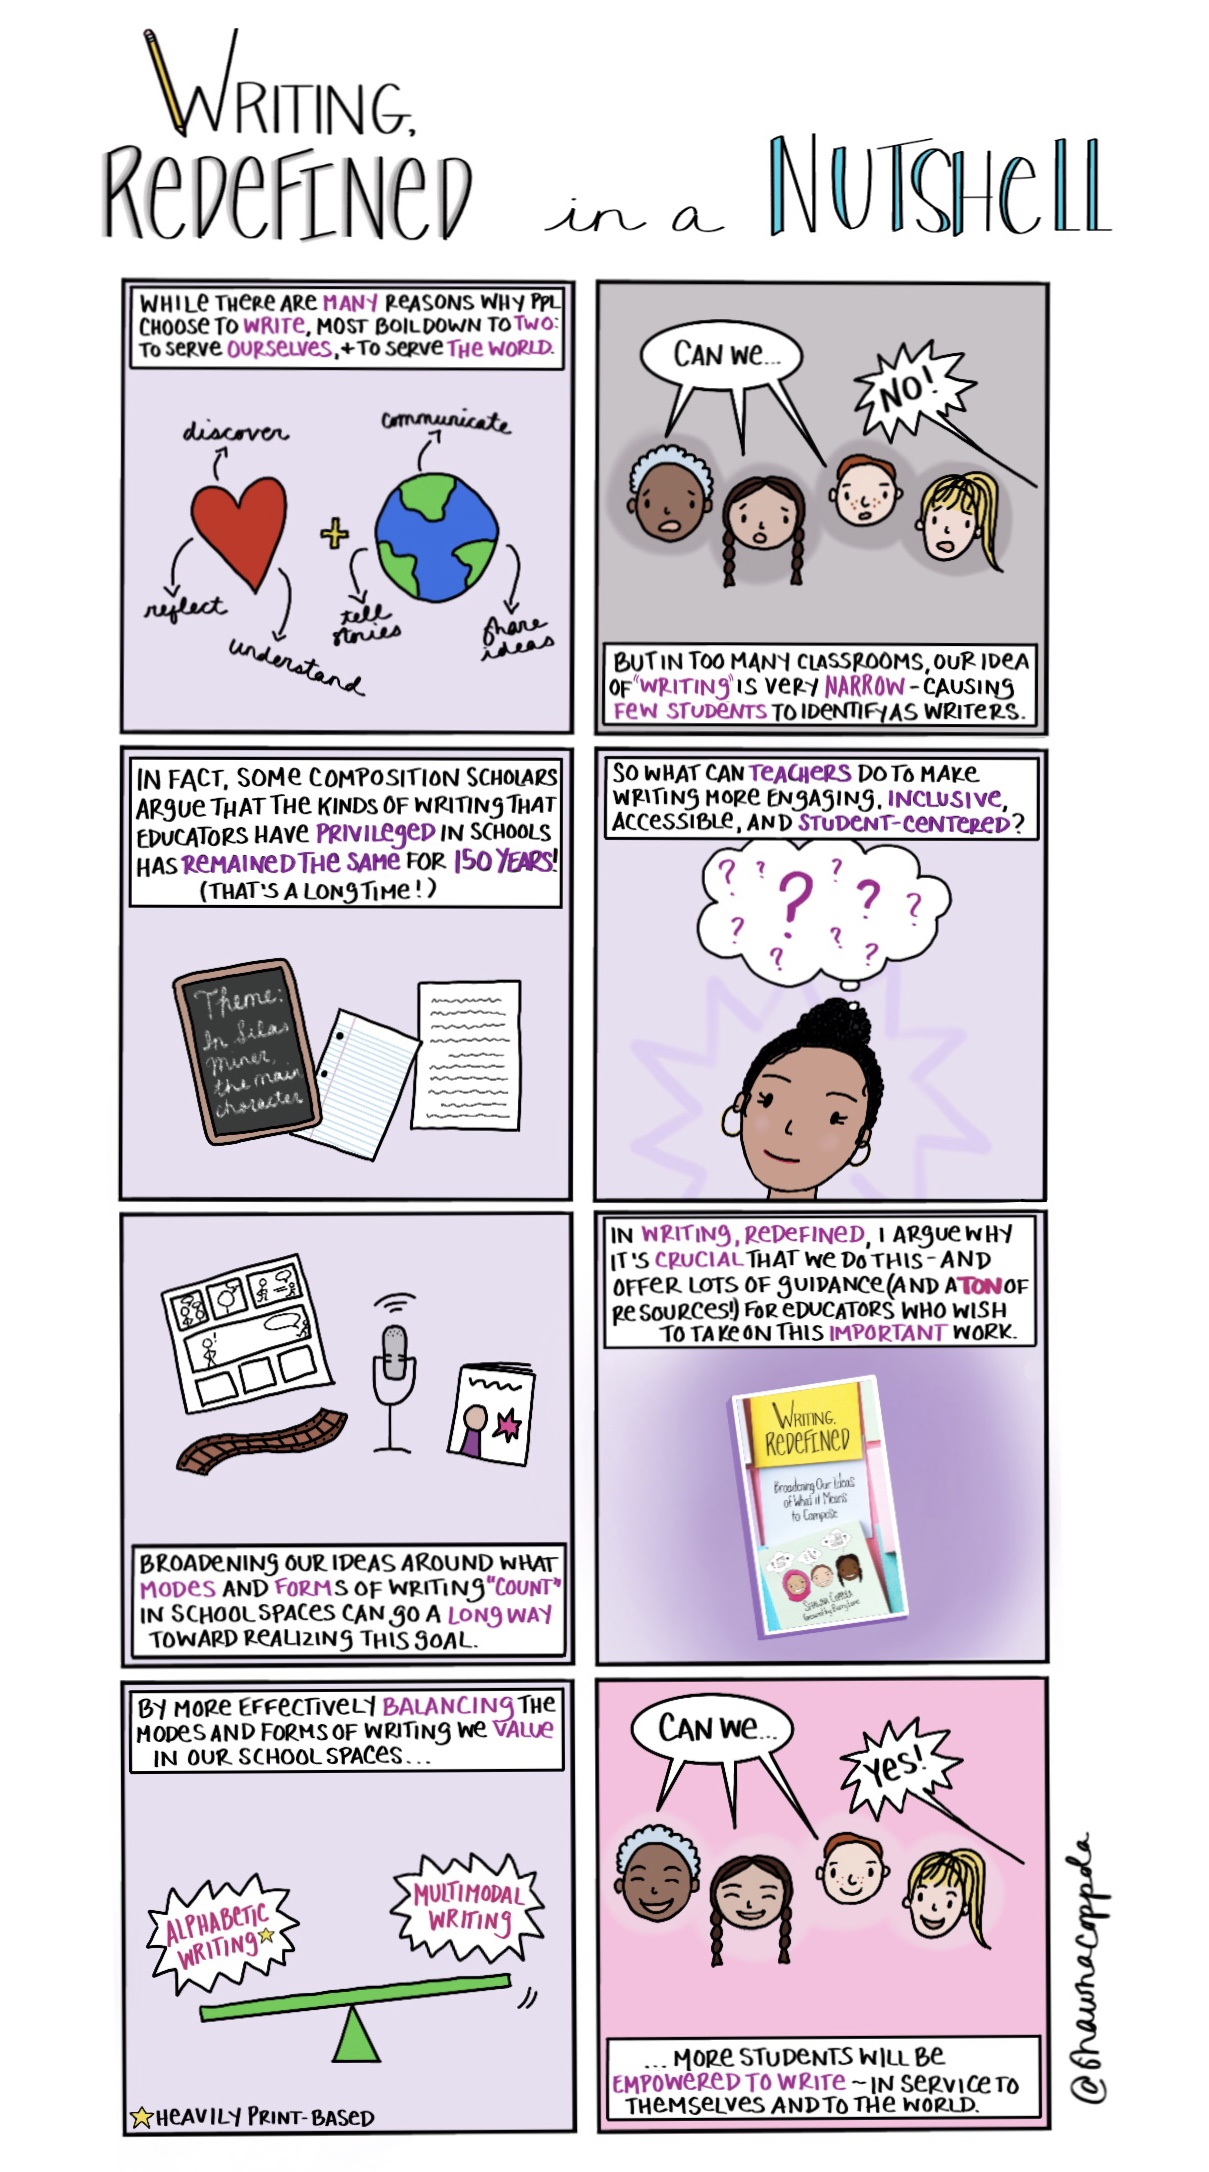 Writing, Redefined in a Nutshell, a comic strip by Shawna Coppola